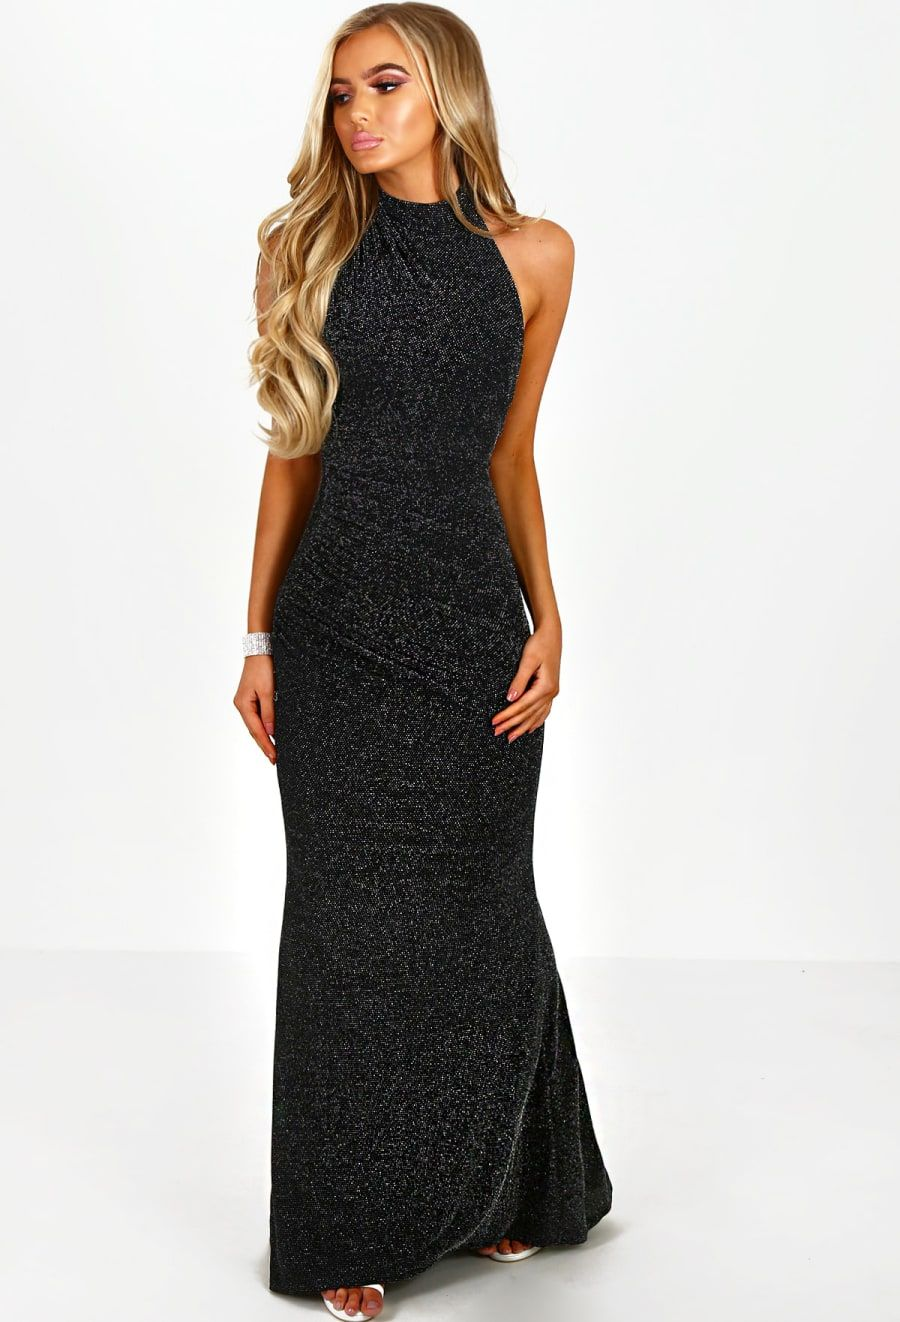 1fab2f5135a Try Your Luck Black Glitter Halterneck Maxi Dress - 8